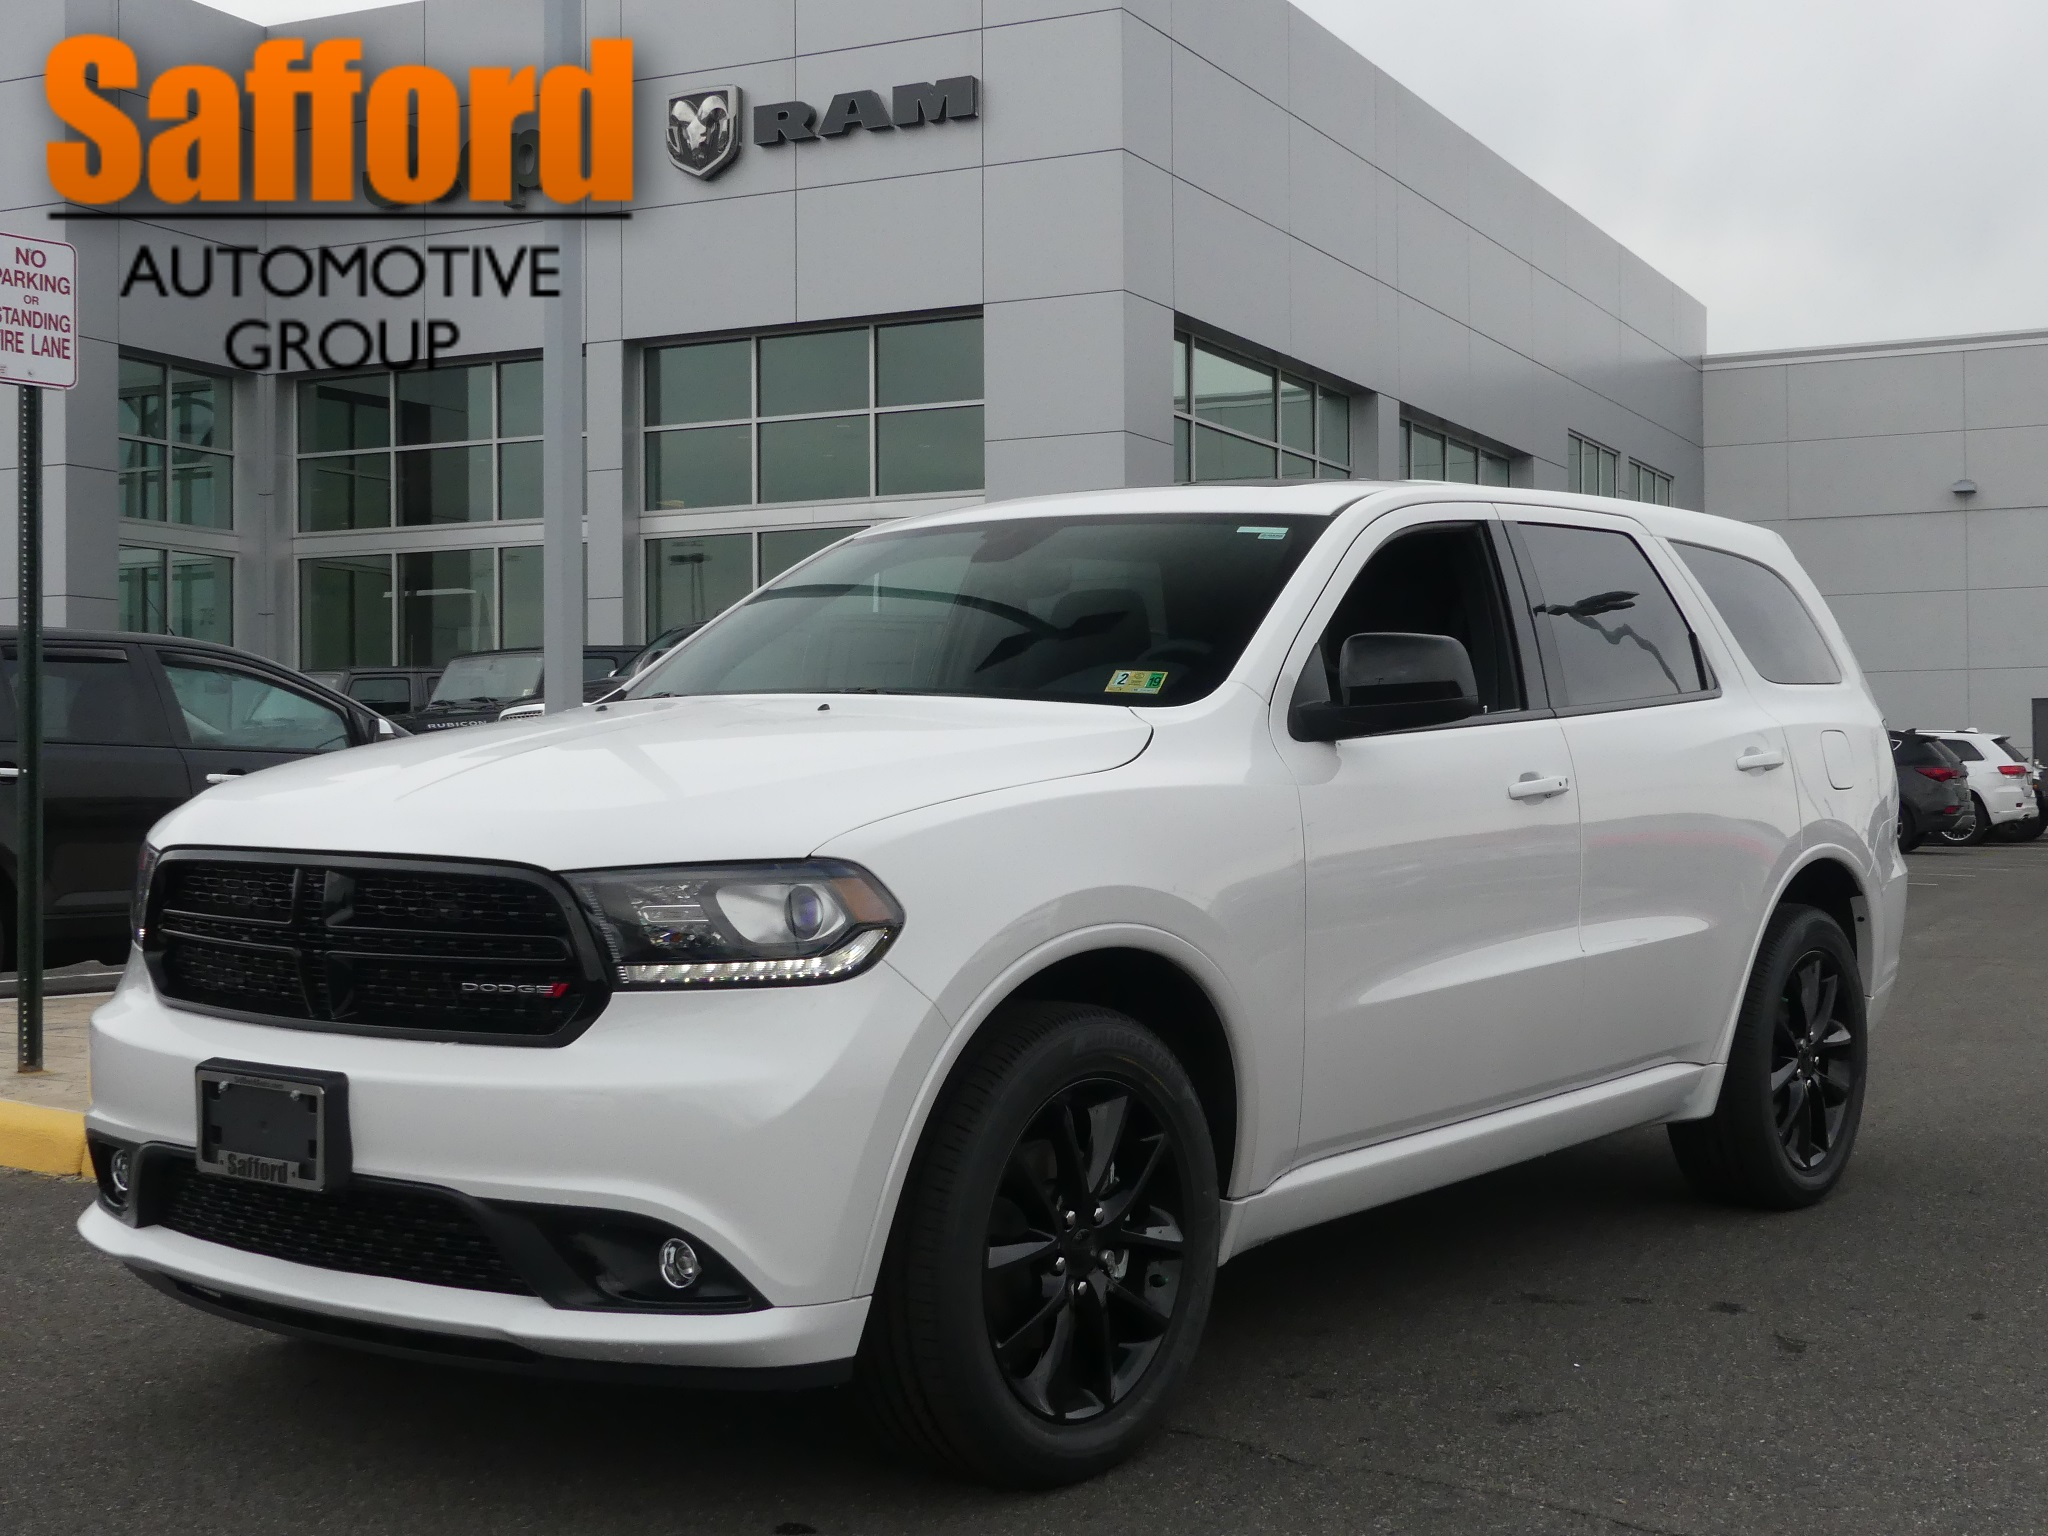 springfield awd utility sport dodge sxt inventory durango in new